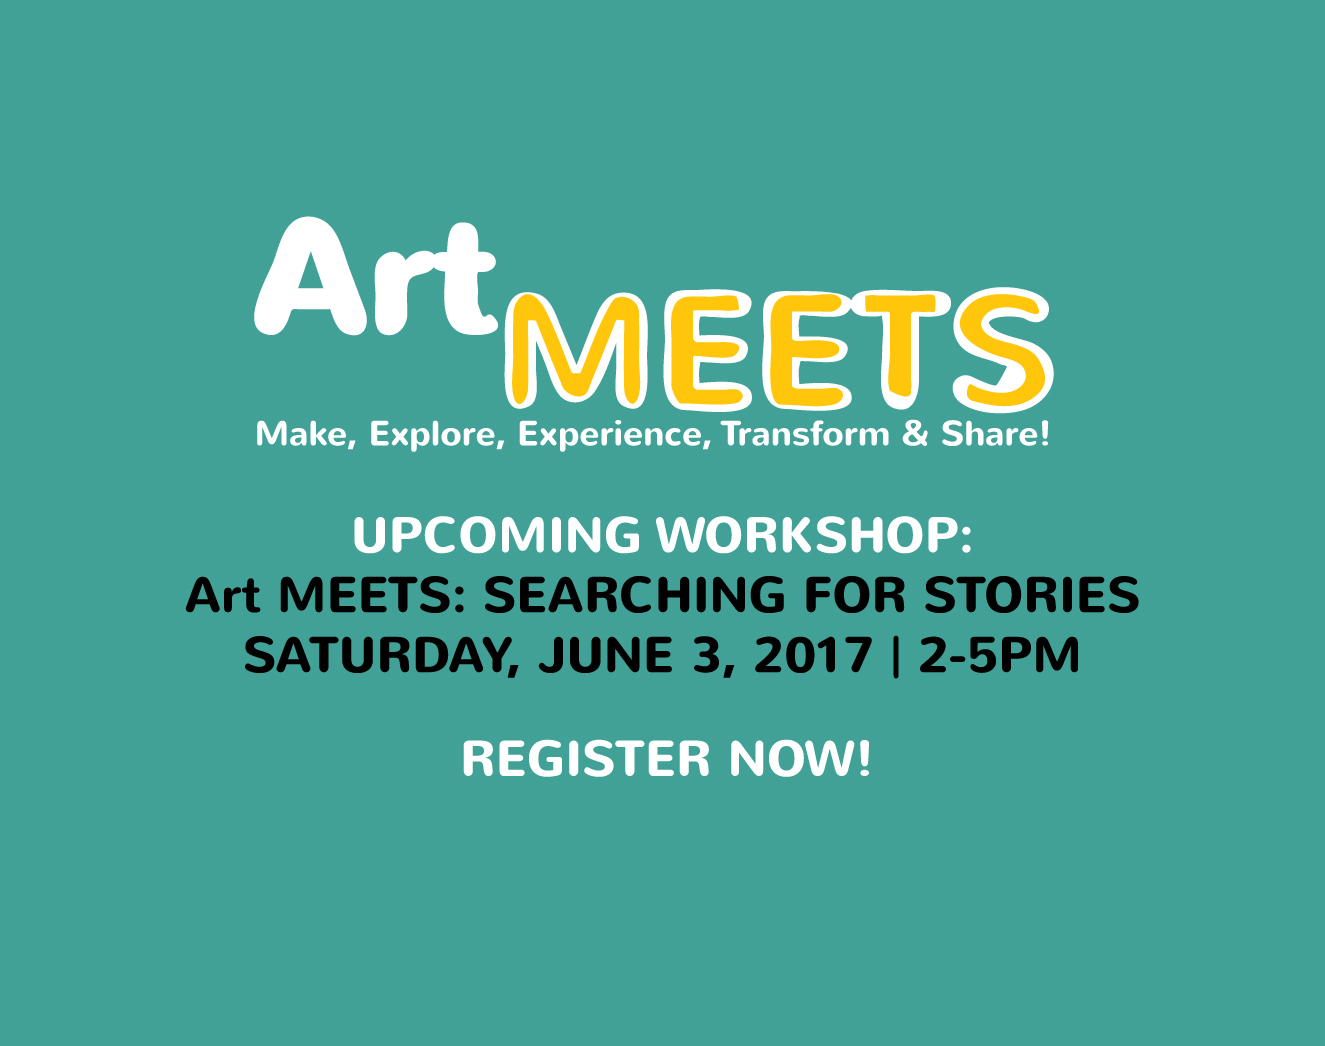 Art MEETS: Searching For Stories